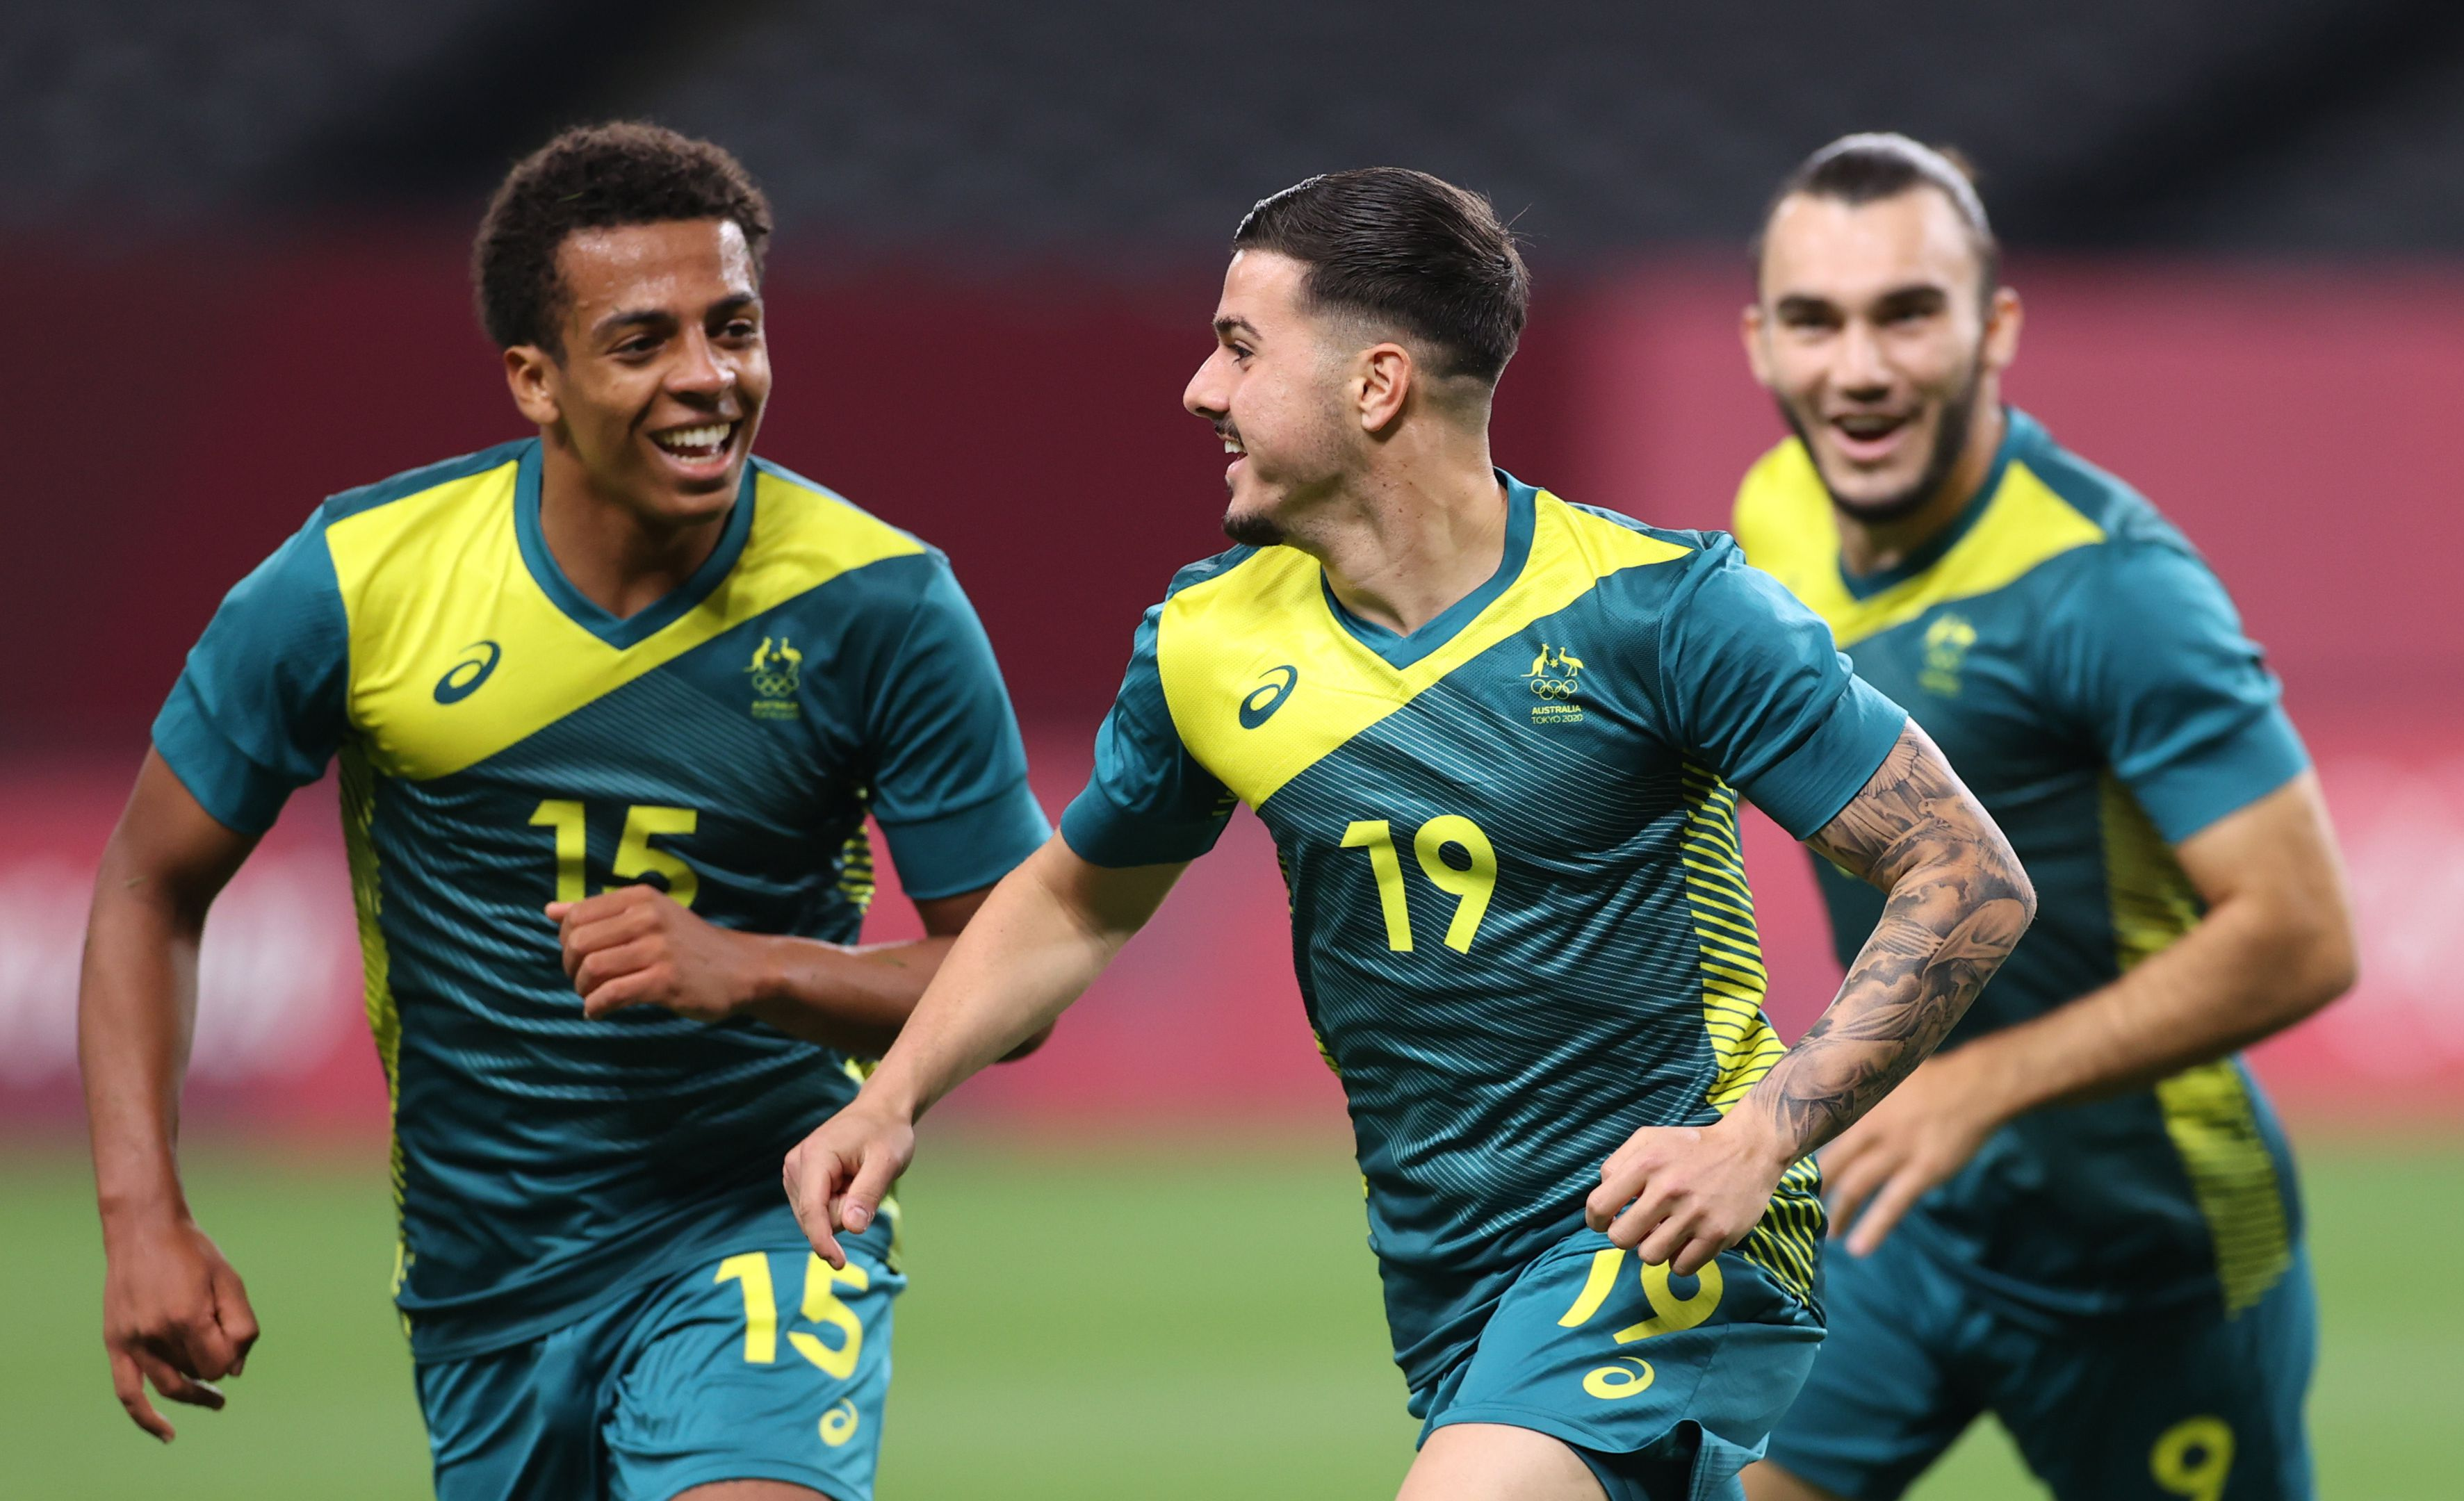 Olyroos stun Argentina 2-0 to kick off Tokyo Olympics campaign